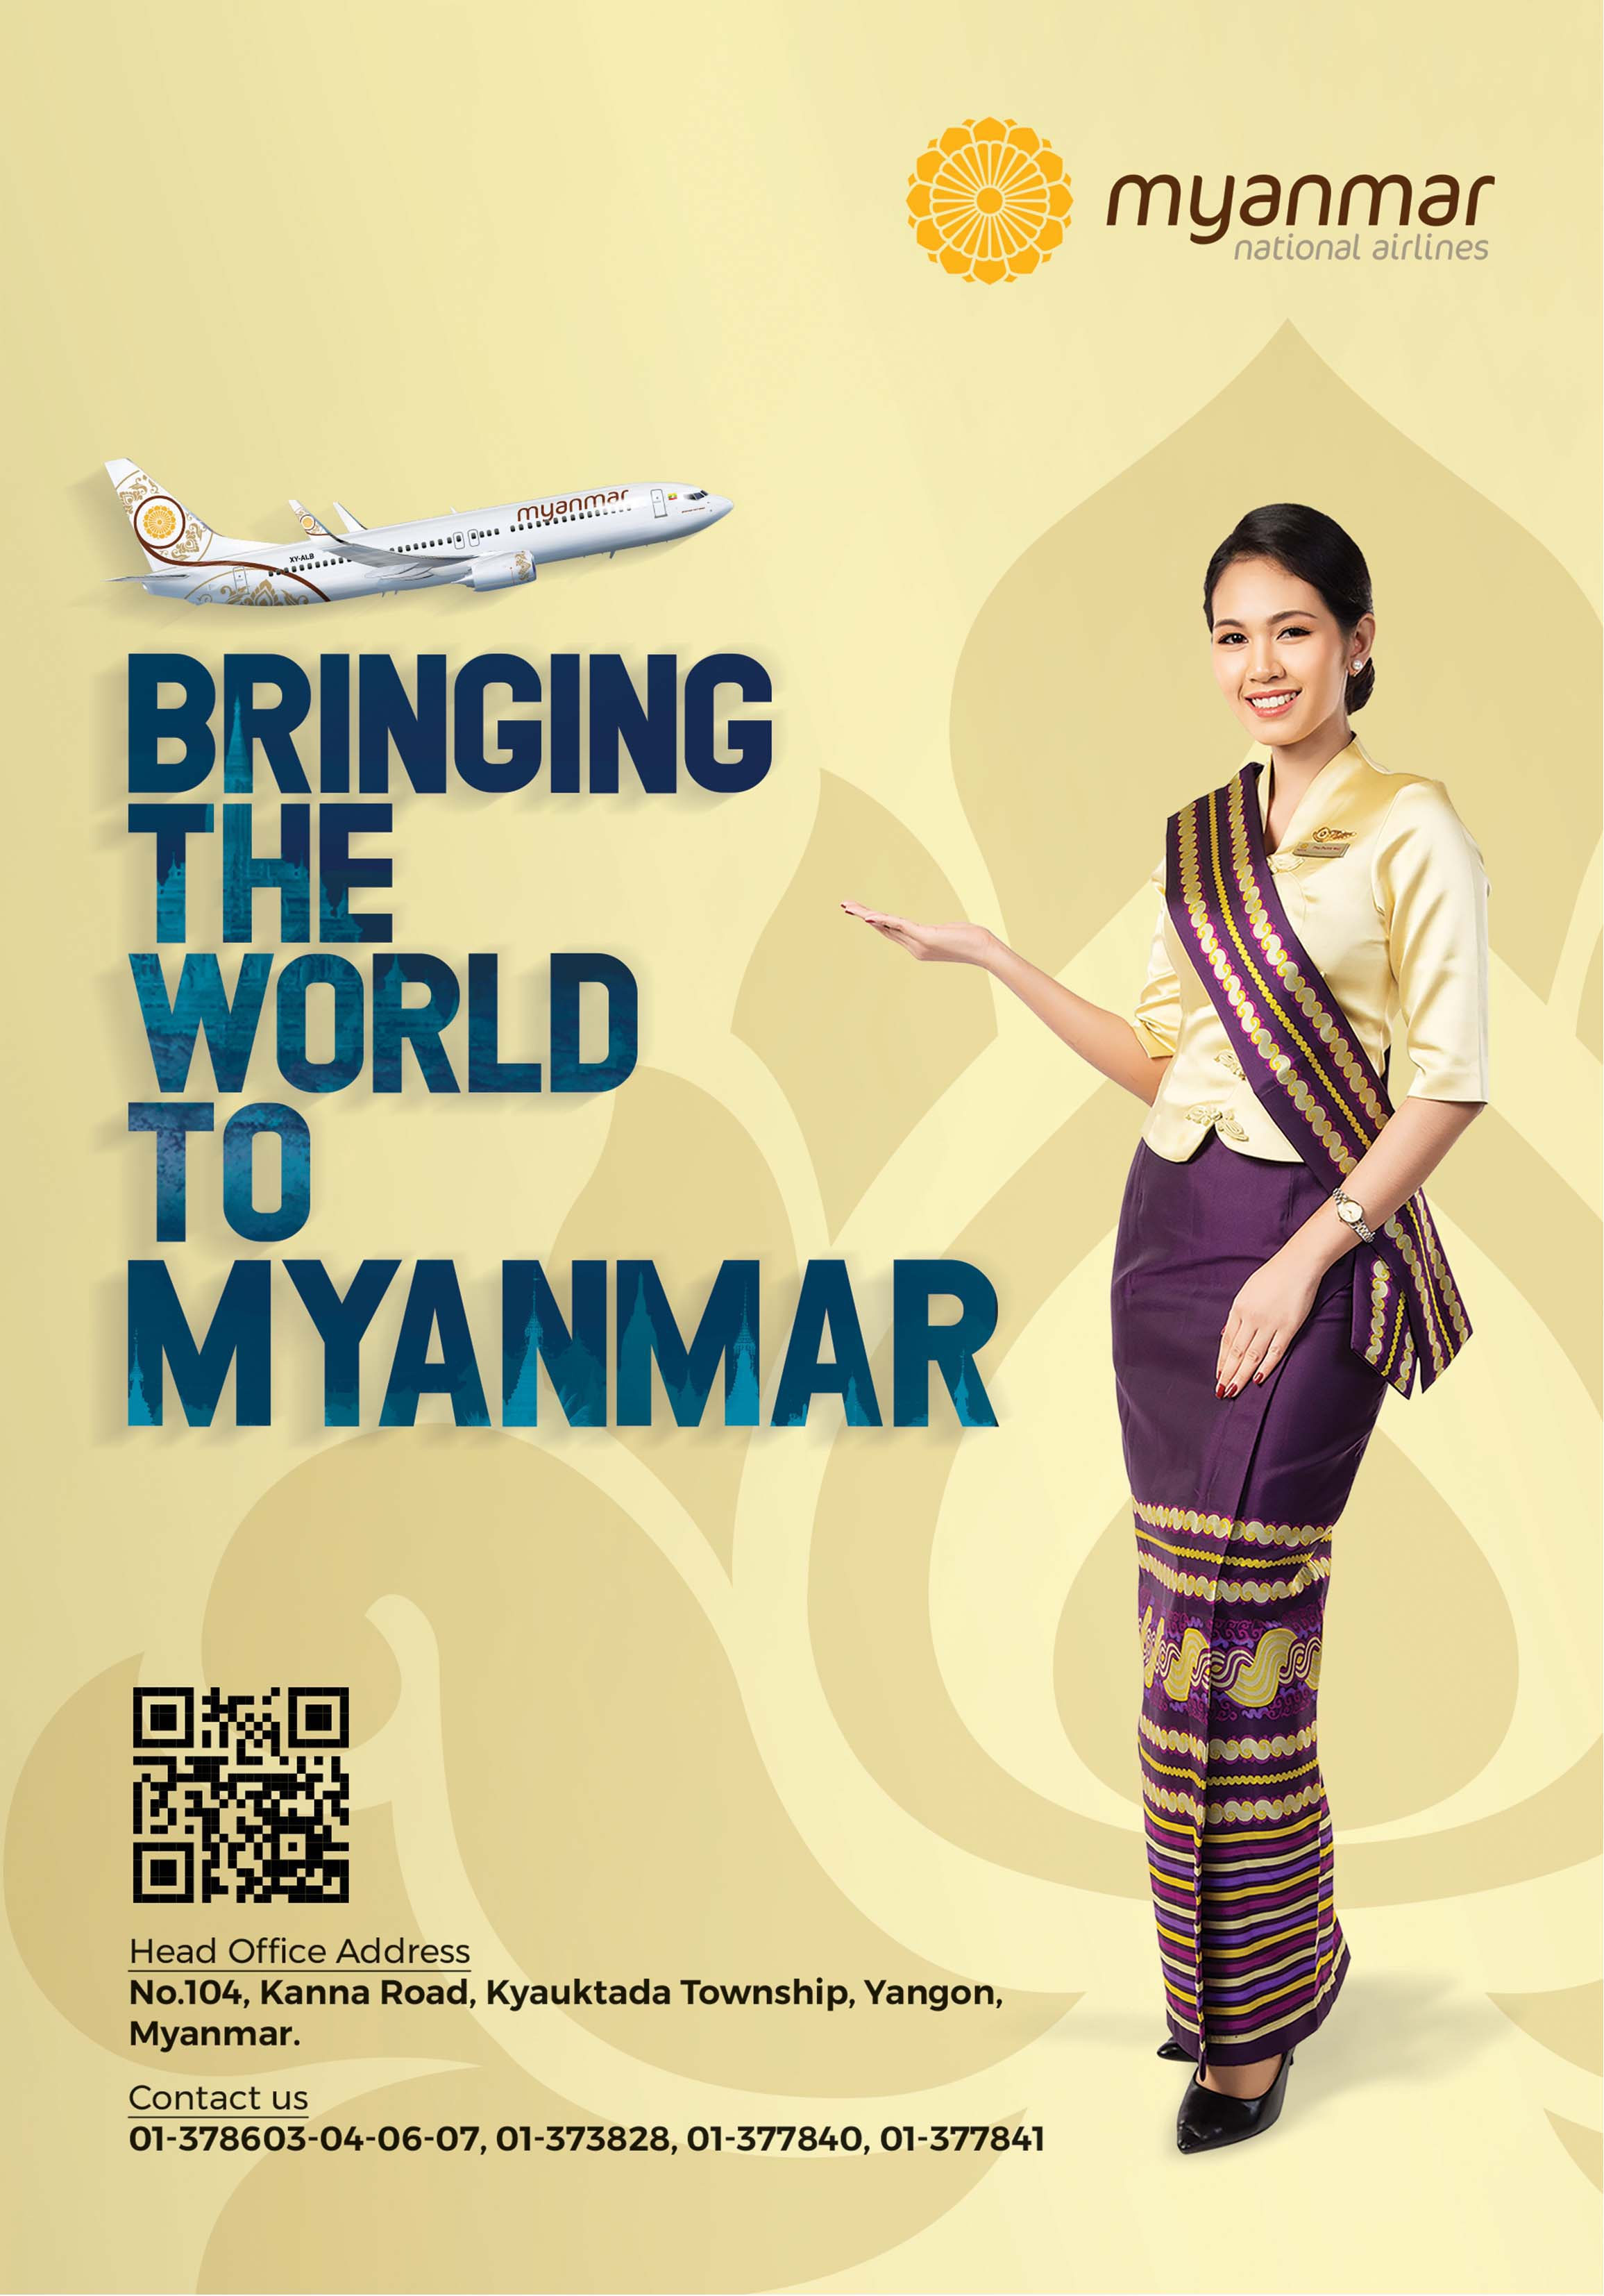 Myanmar National Airlines (MNA)